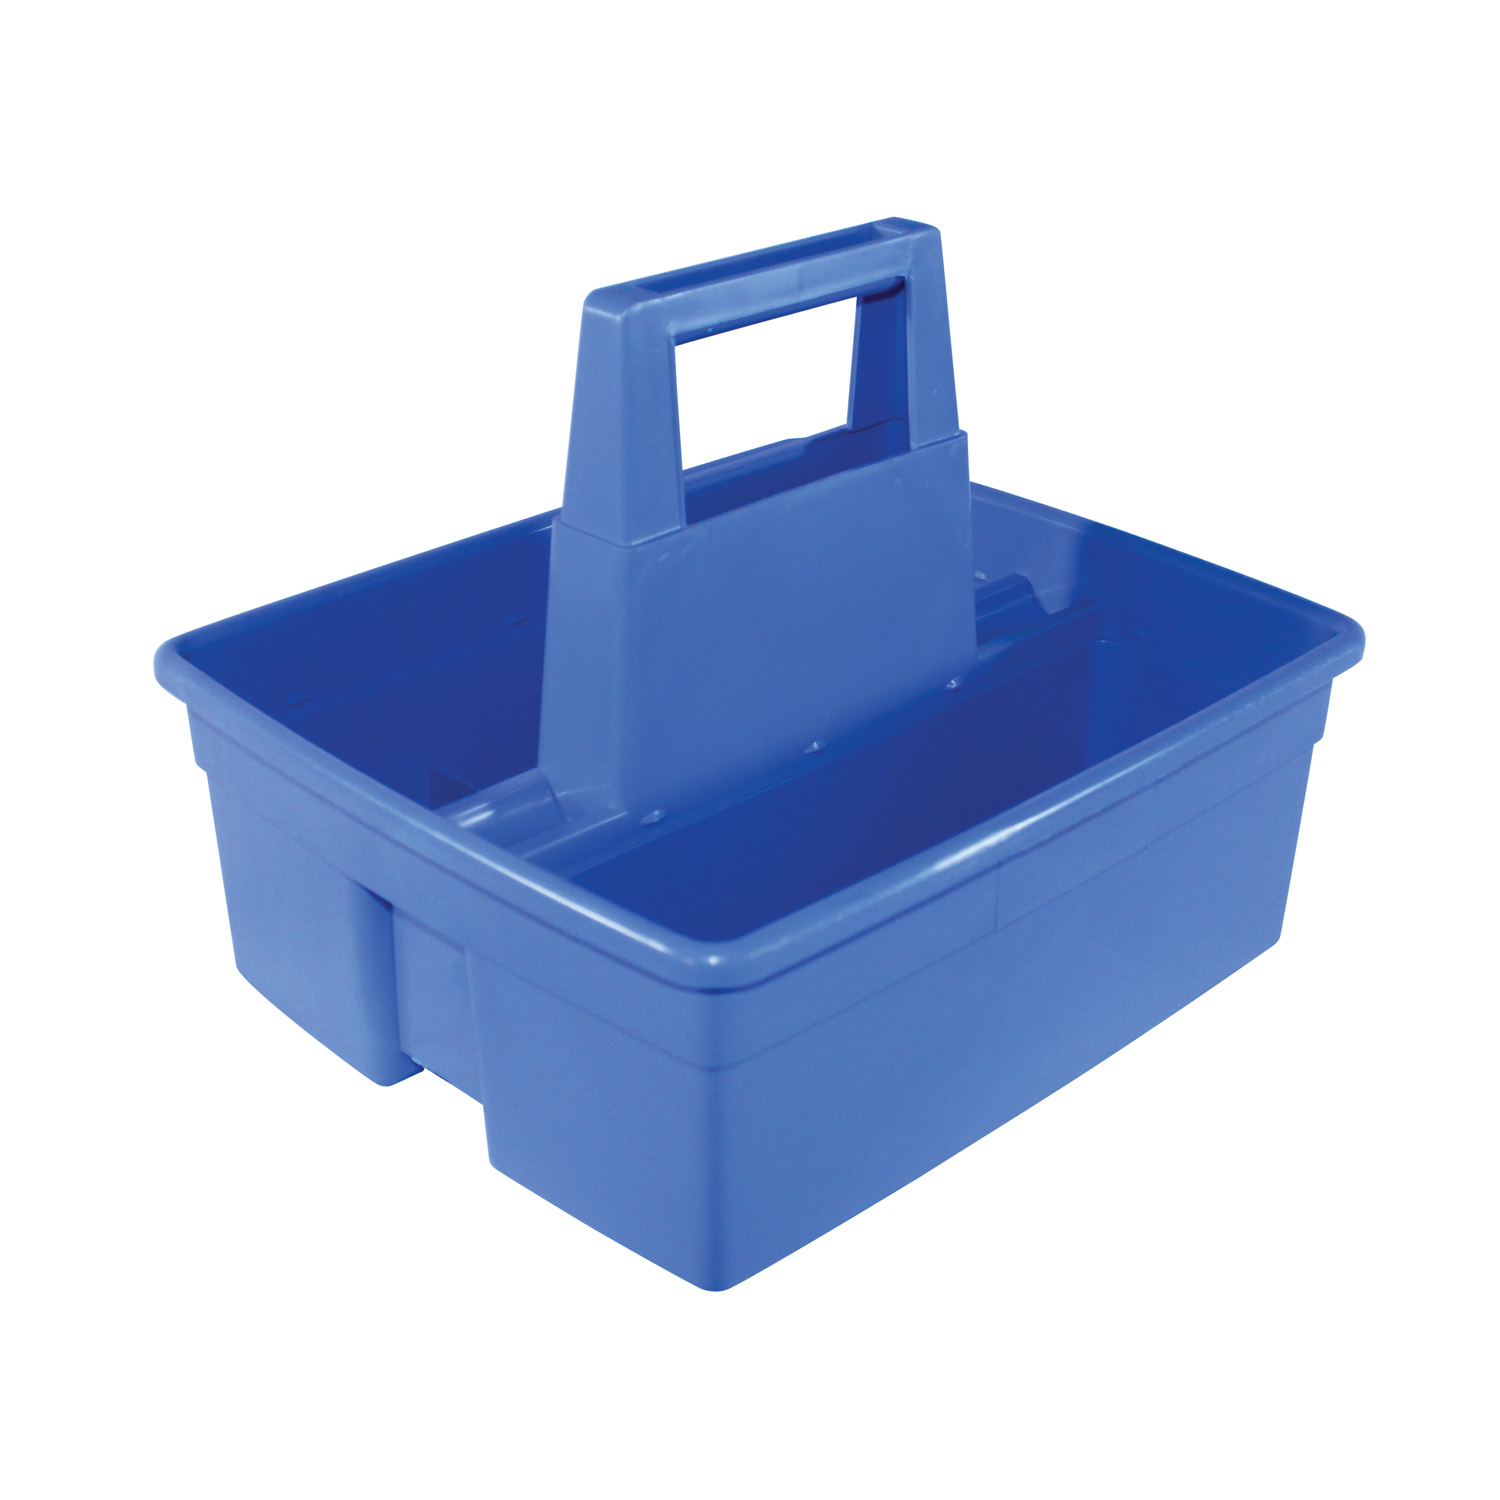 Impact Products 1802 janitor cart, accessories